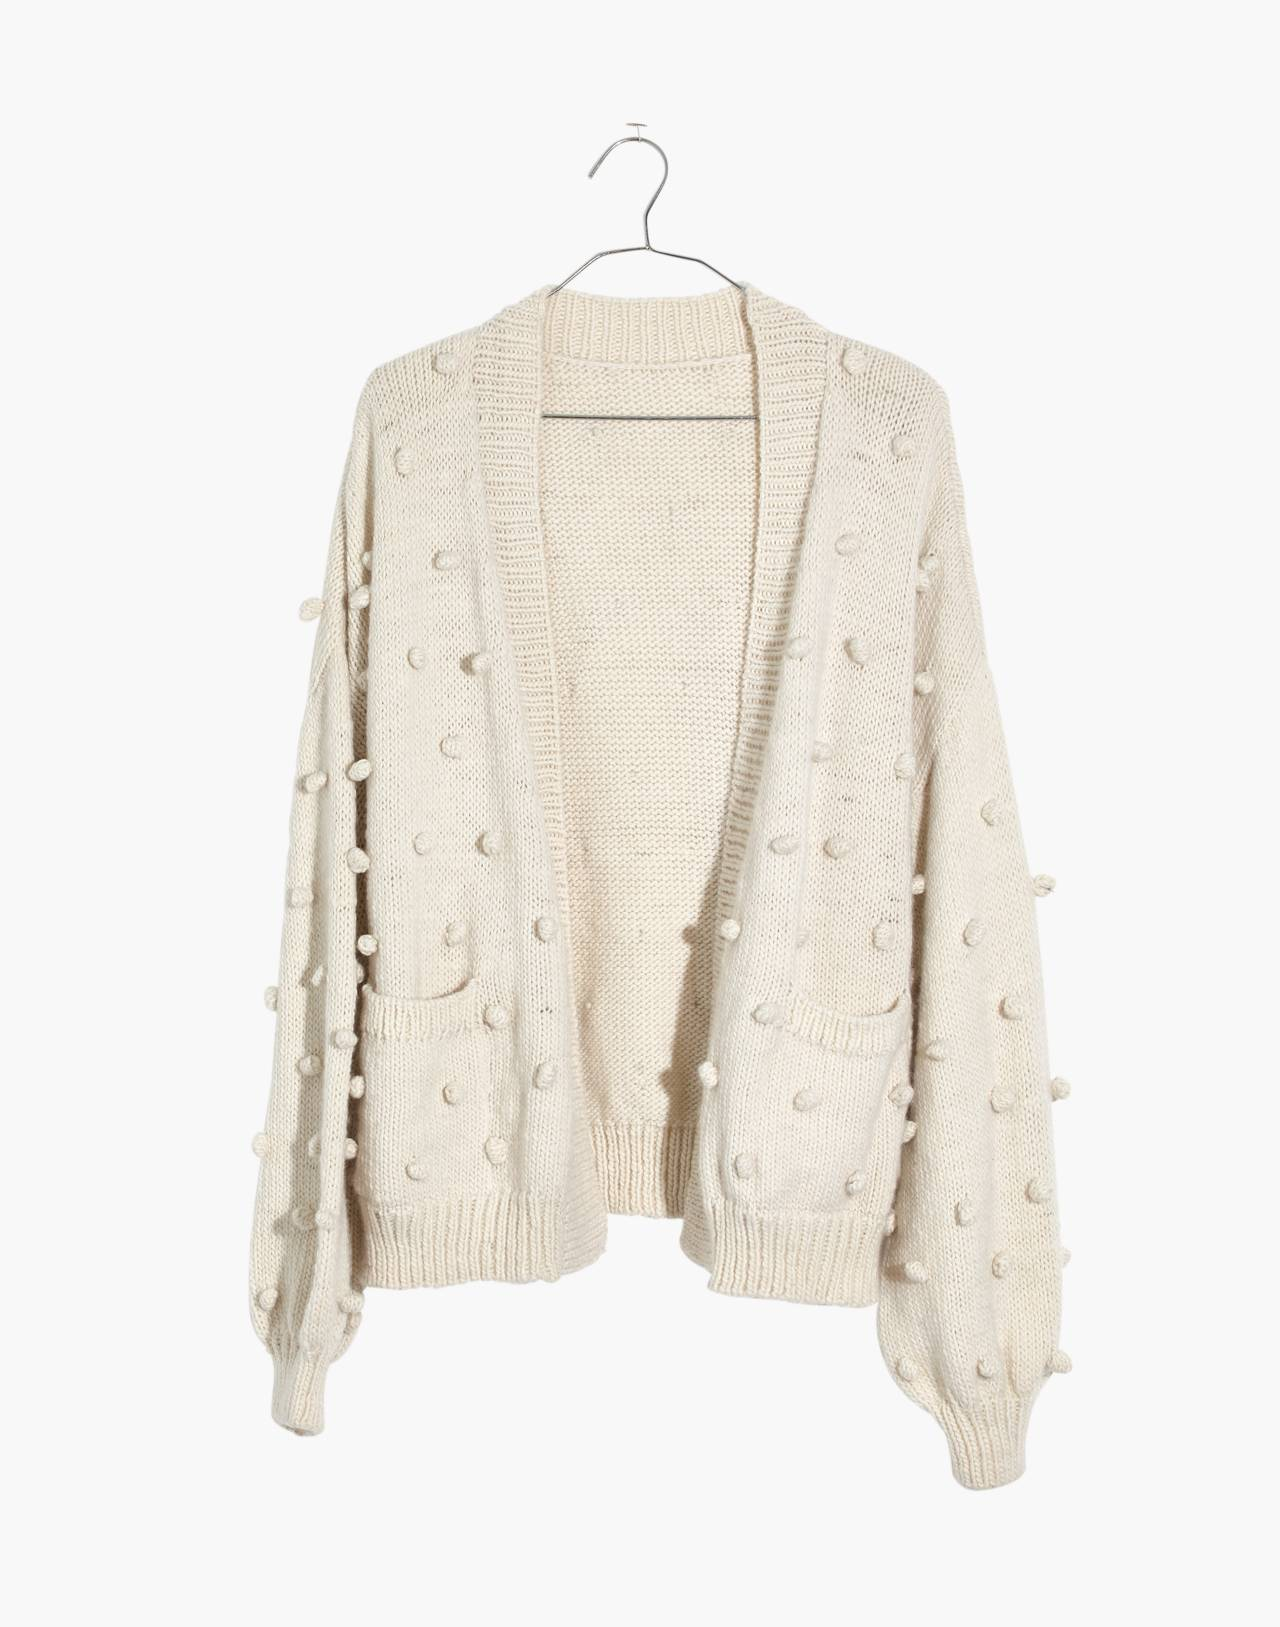 Madewell x Manos del Uruguay™ Bobble Cardigan Sweater in natural image 4